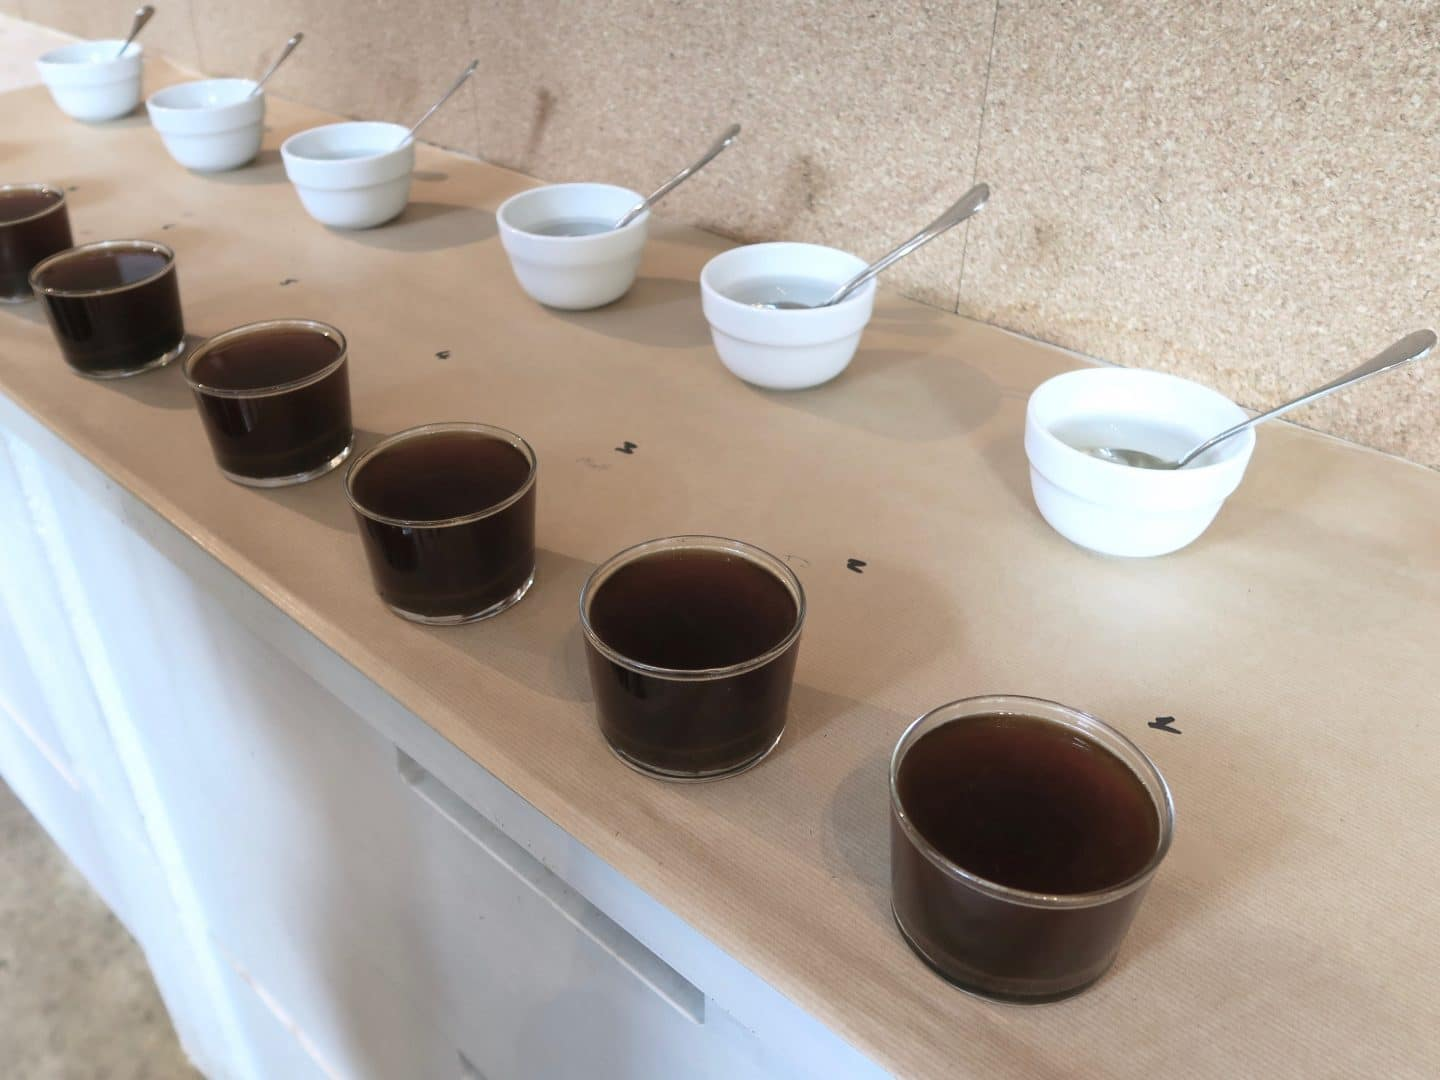 Cupping with Oatly x Old Spike | Curiously Conscious